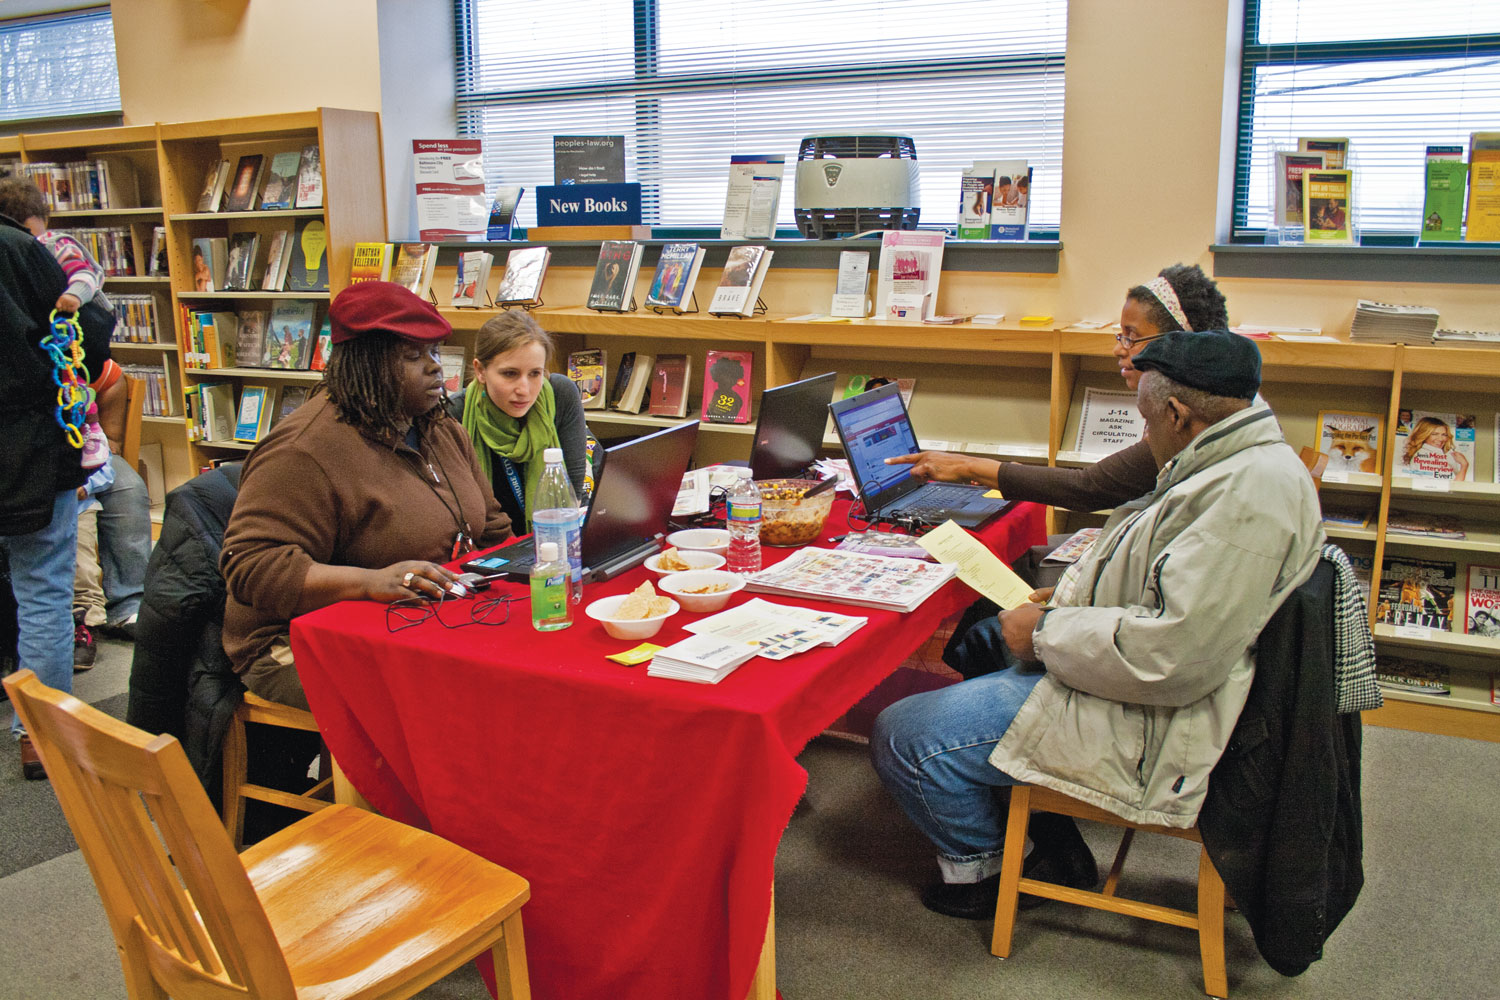 Customers placing orders at library